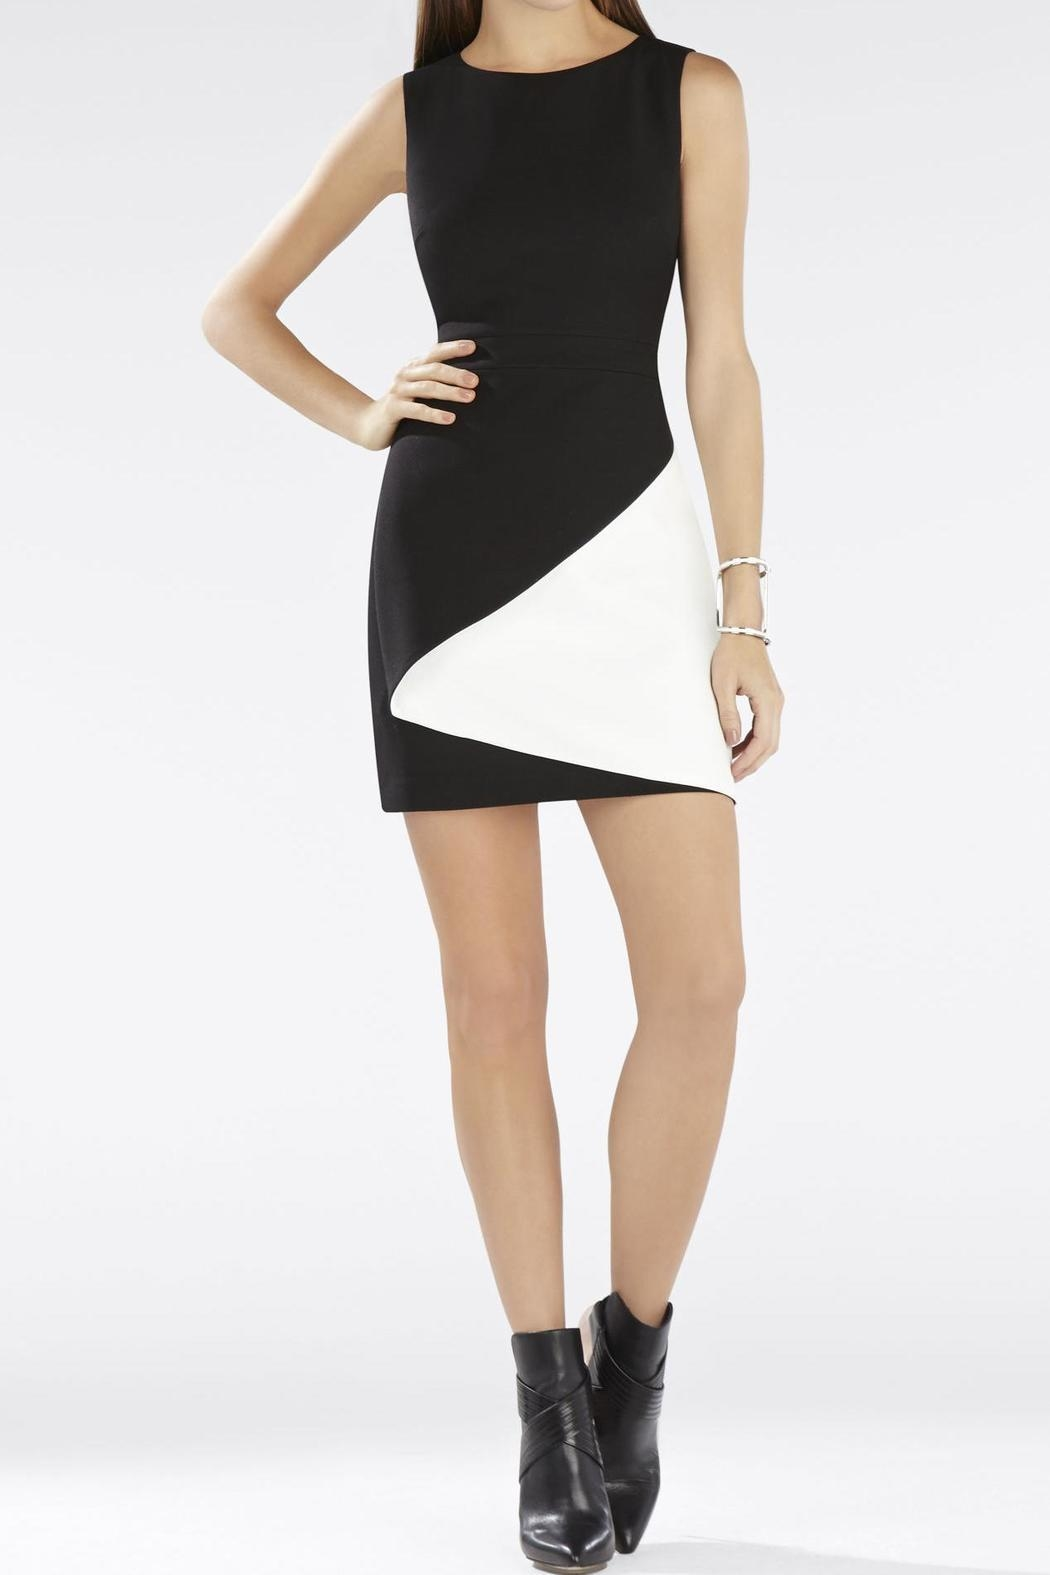 BCBG Max Azria Jesica Dress - Front Cropped Image